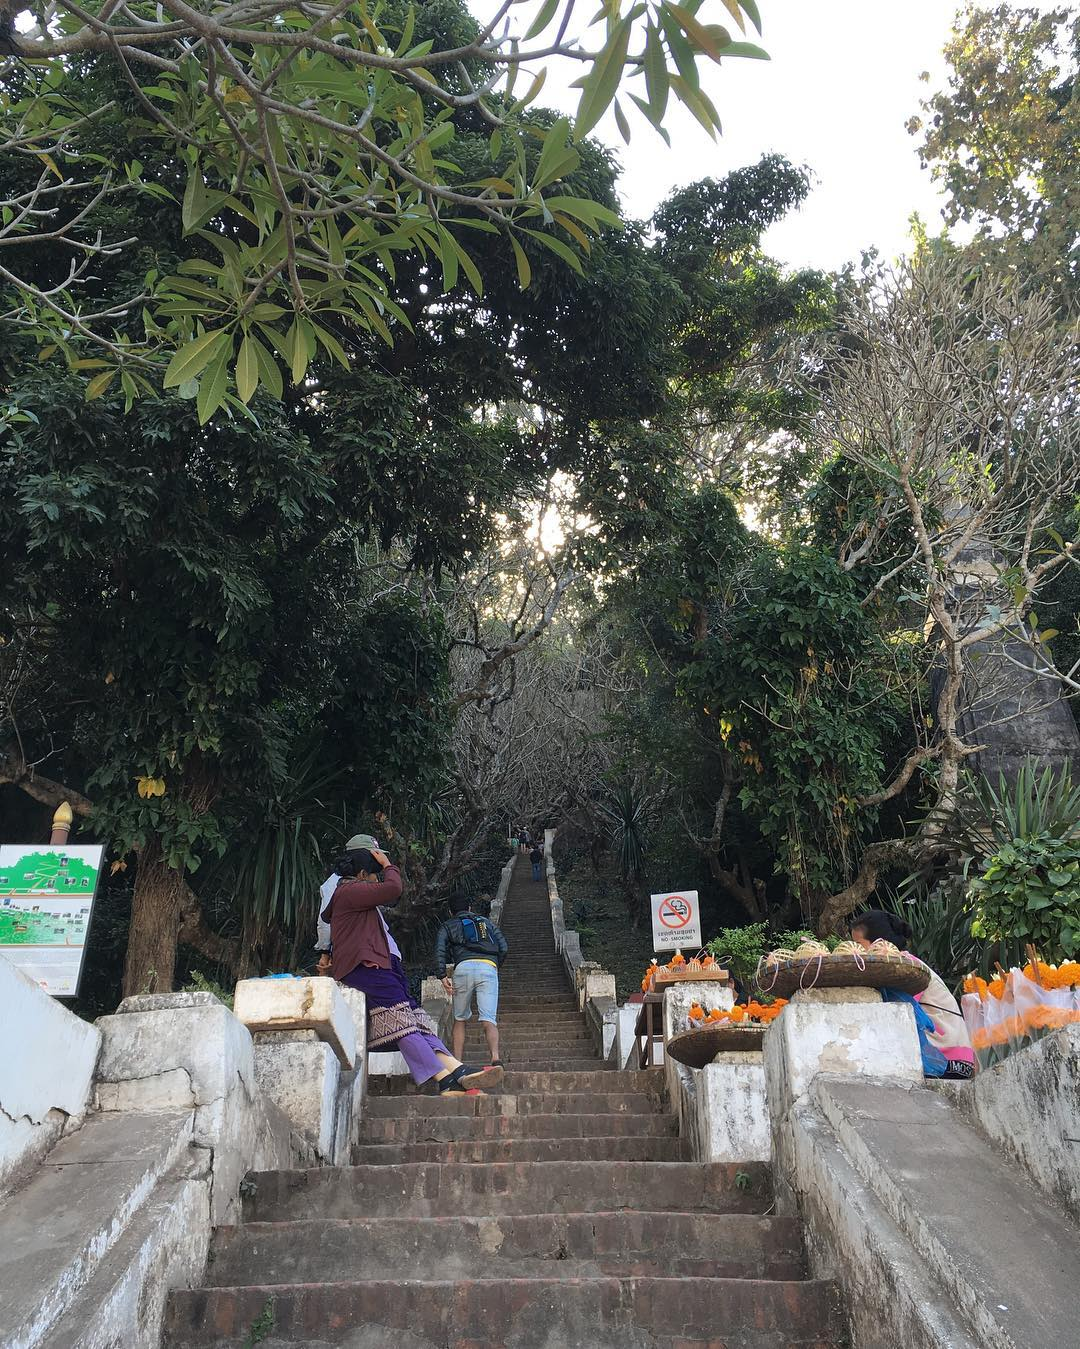 The flight of stairs going up the Mount Phou Si.